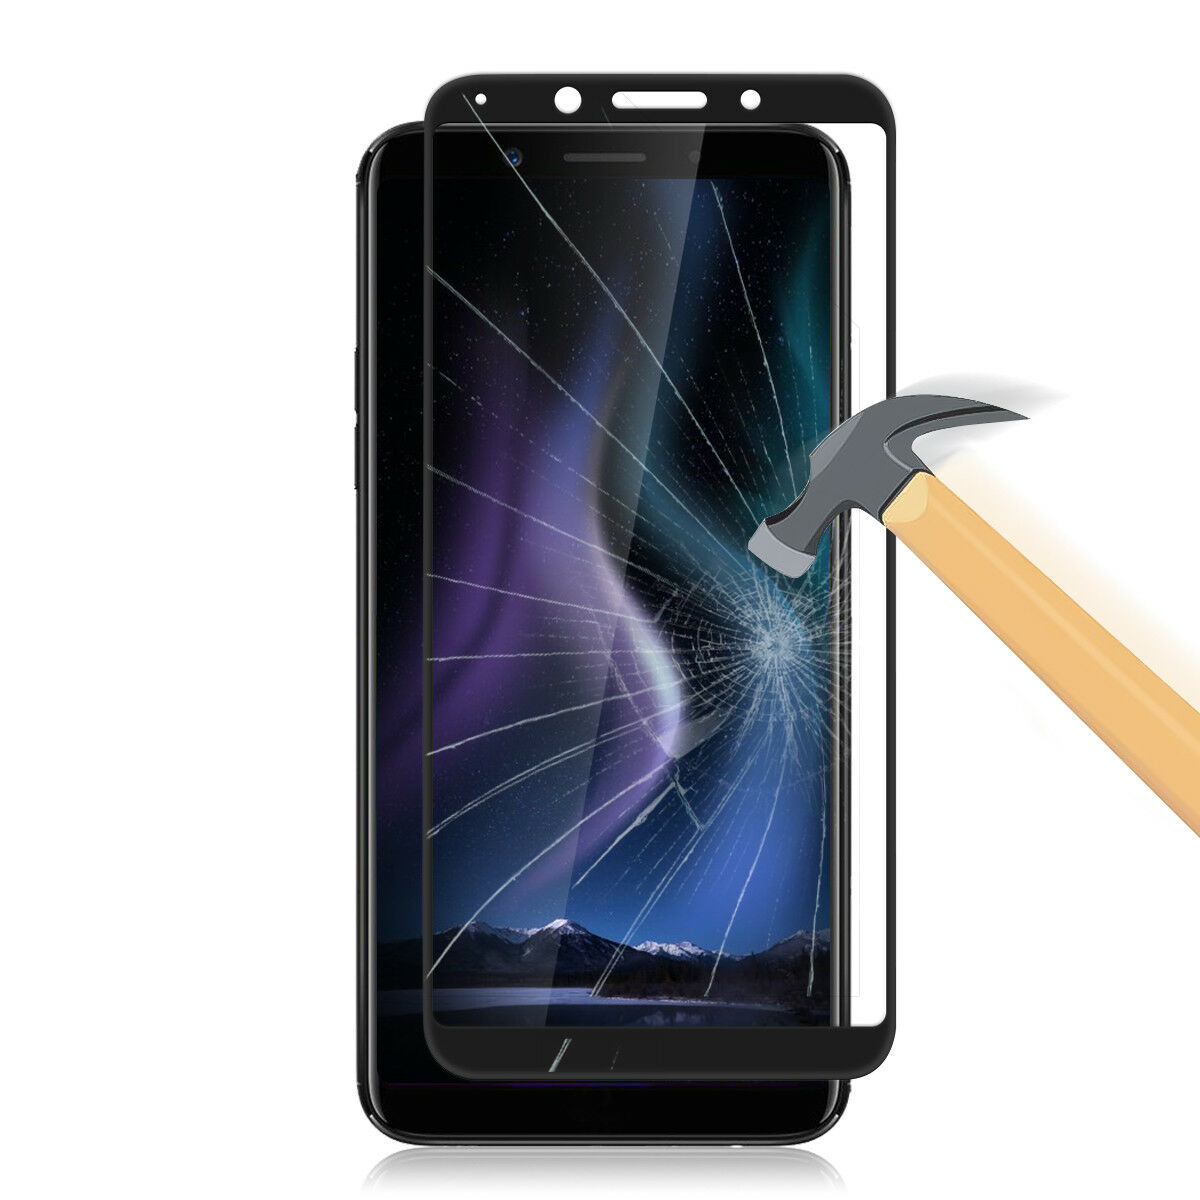 9h Full Coverage Tempered Glass Screen Protector Cover Film For Oppo F3 3d White Premium Pro 2x Protectors F5